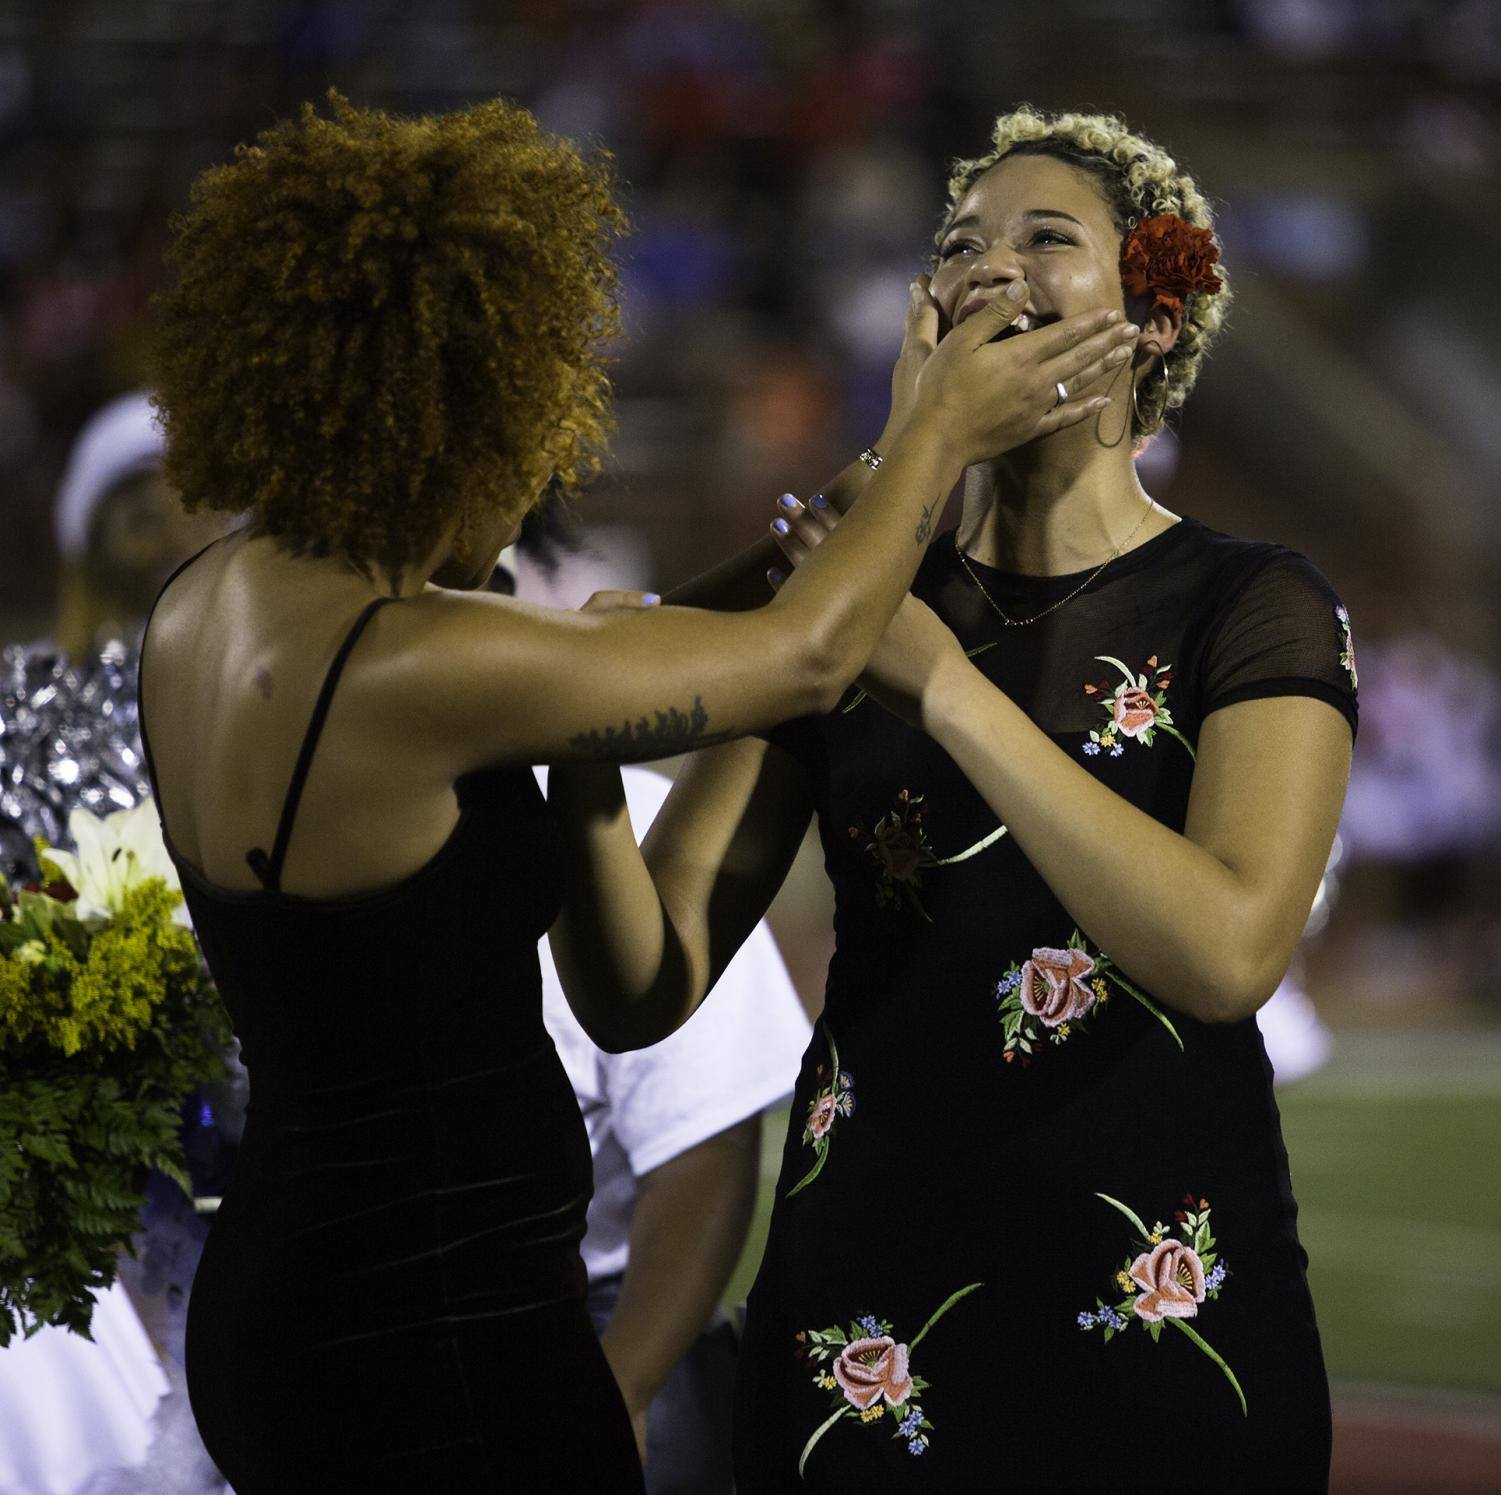 Homecoming Queen Kayle Bowens celebrates being named homecoming Queen with her sister. (Brenda Arana Photo)